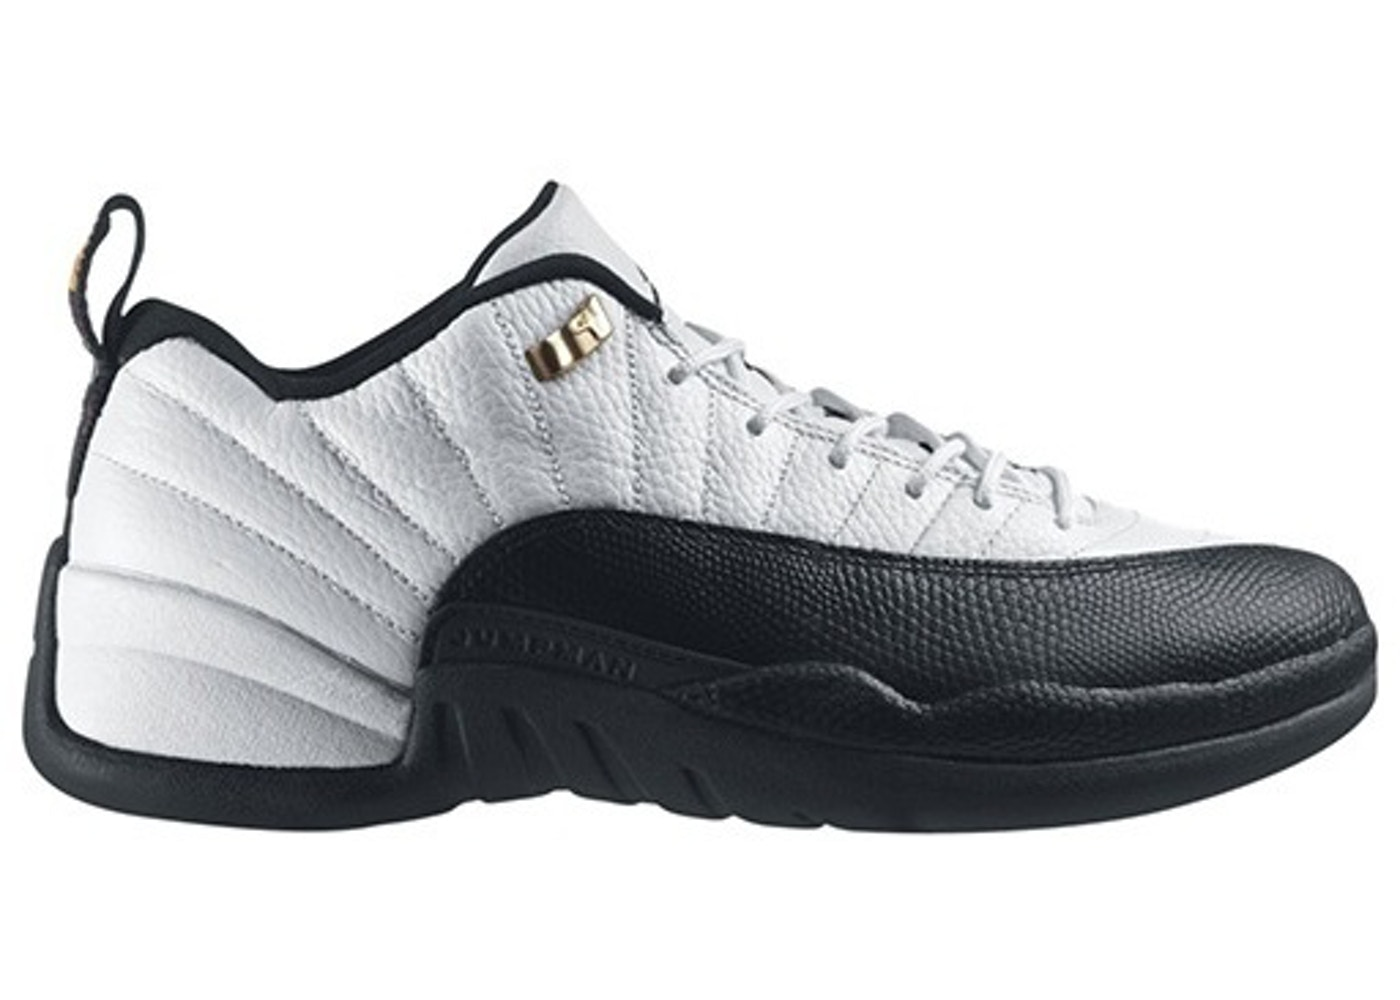 Jordan 12 Retro Low Taxi (2004) - 308317-101 393290dc4636